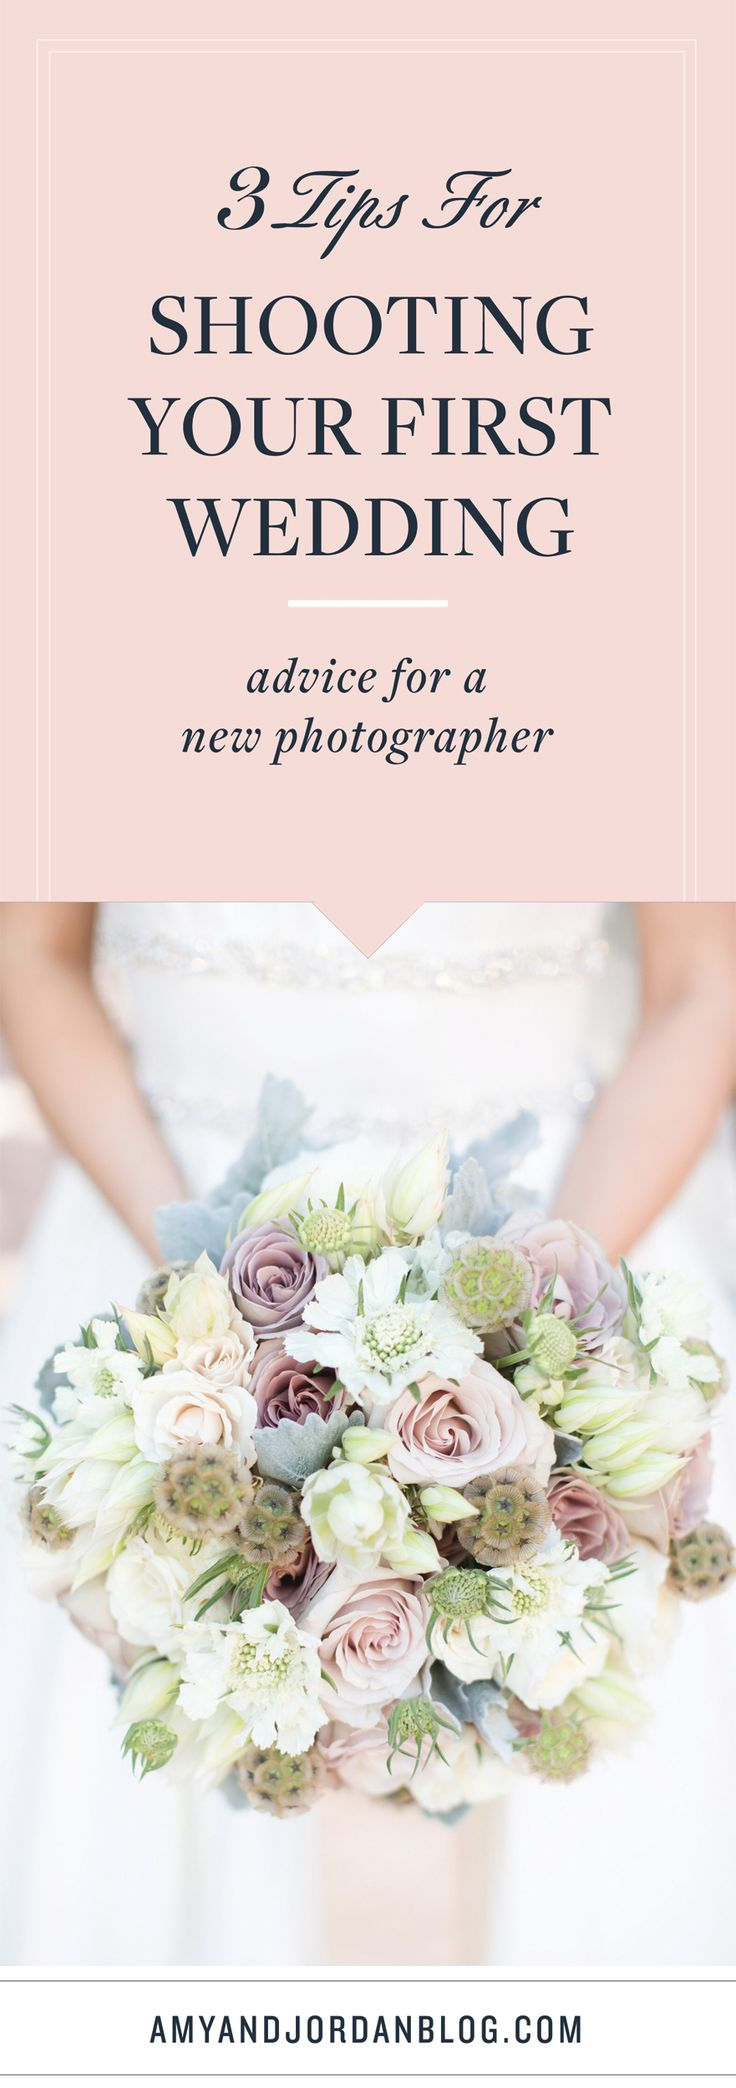 3 tips for shooting your first wedding. Advice for a photographer.